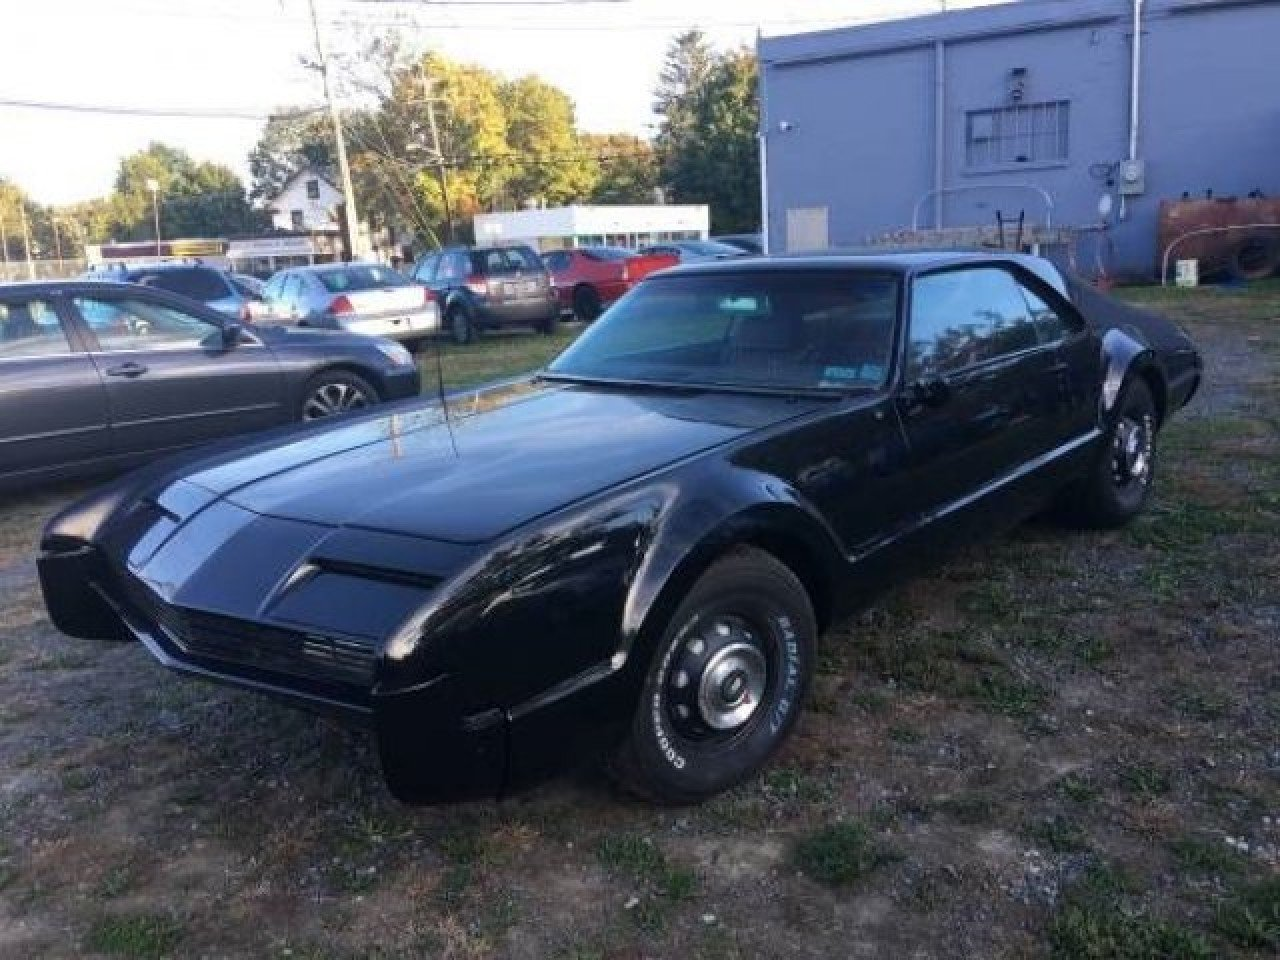 Autotrader Muscle Cars For Sale >> 1966 Oldsmobile Toronado for sale near Cadillac, Michigan 49601 - Classics on Autotrader